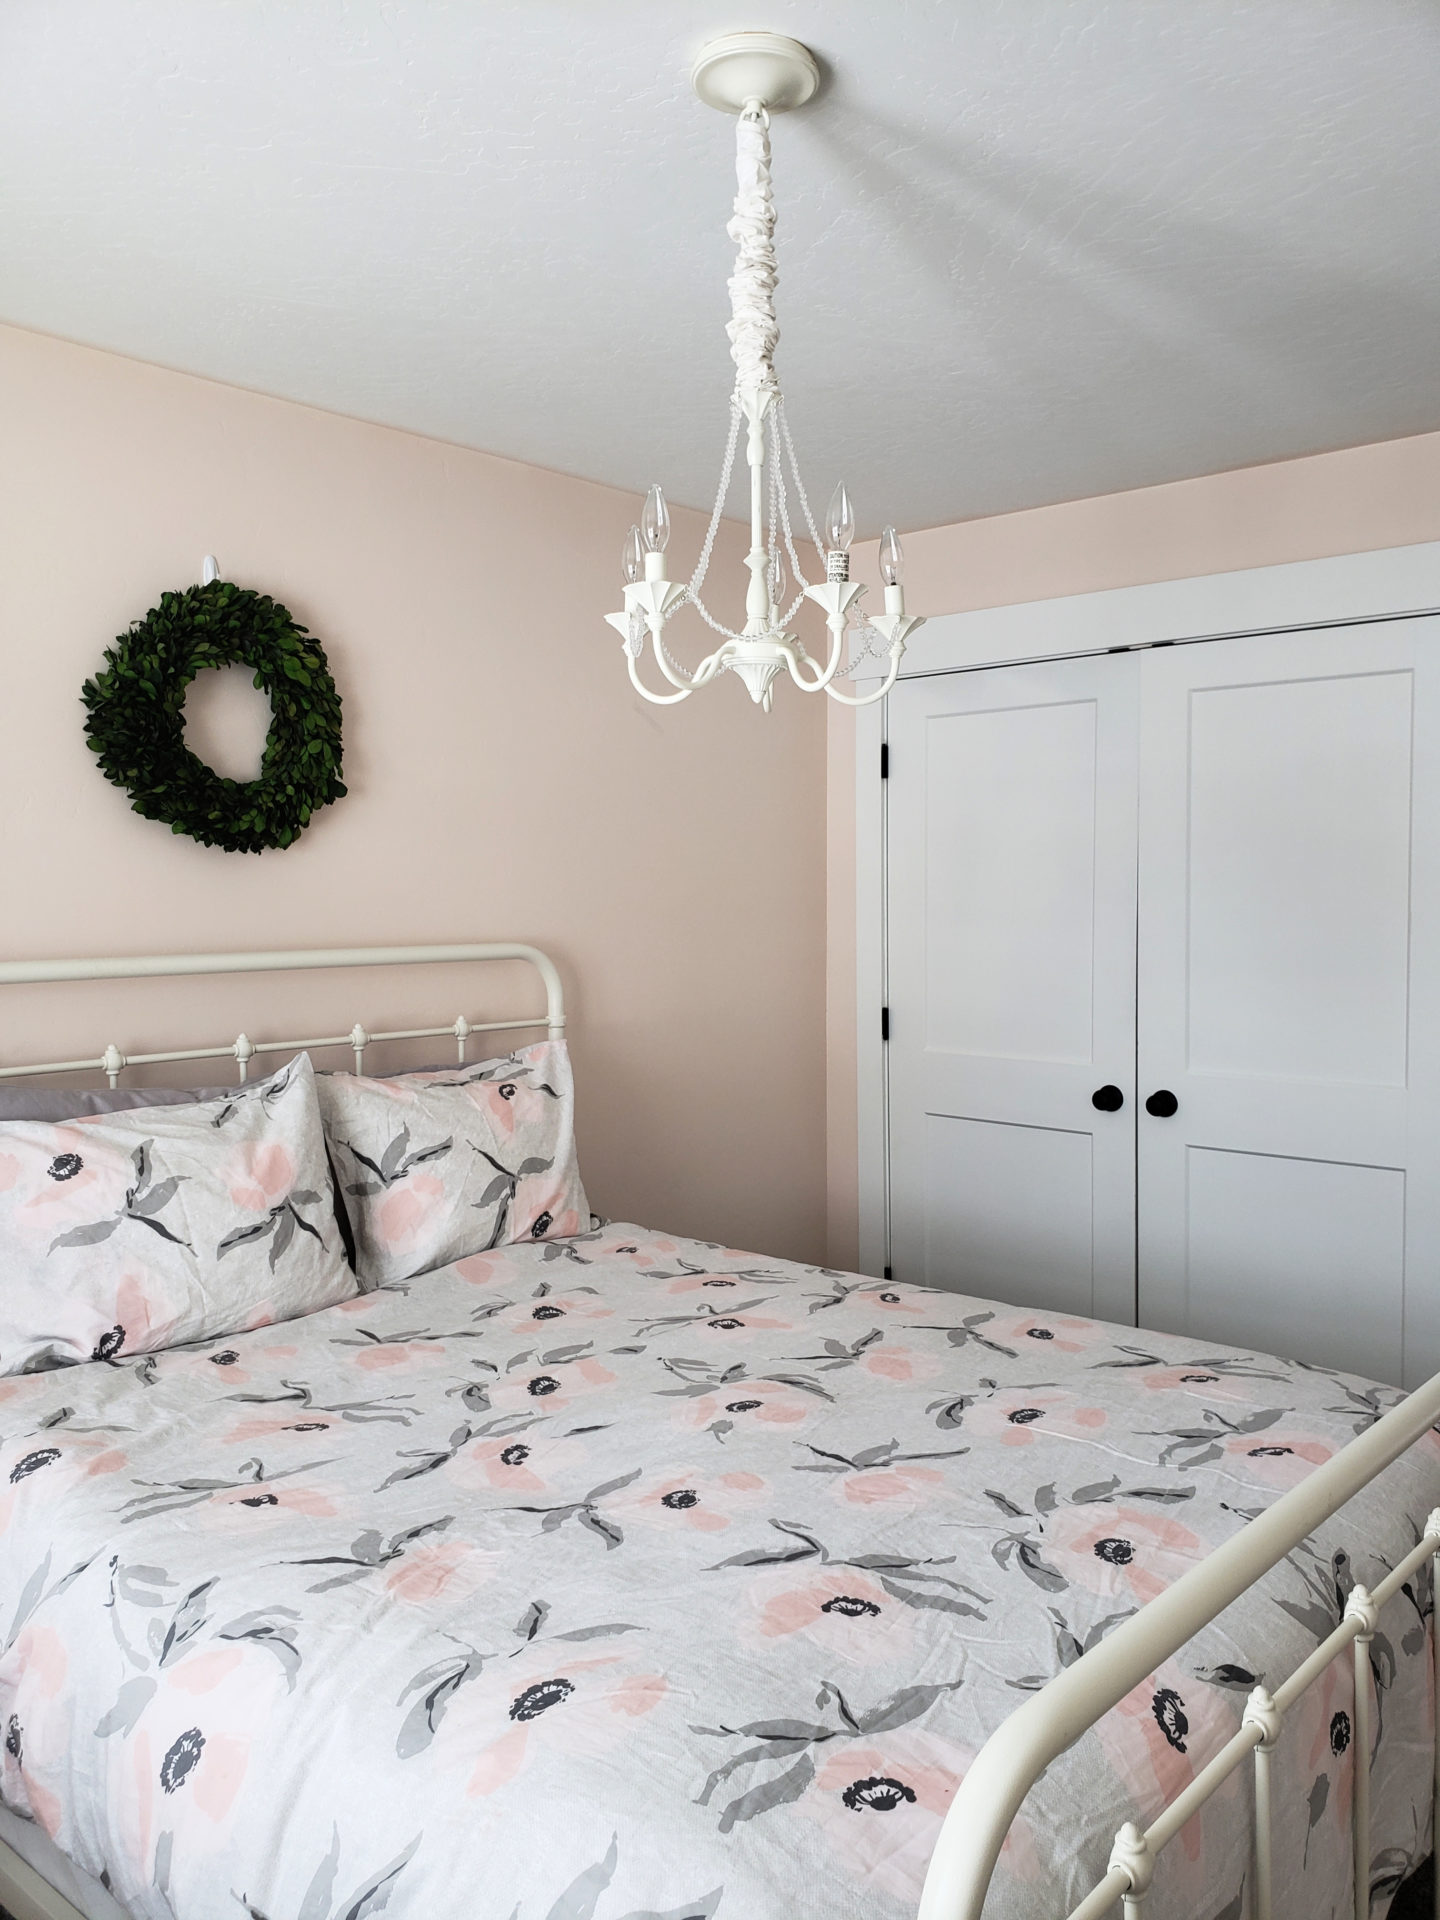 Sherwin Williams Light Pink : sherwin, williams, light, Perfect, Paint, Color, Favorite, Colors